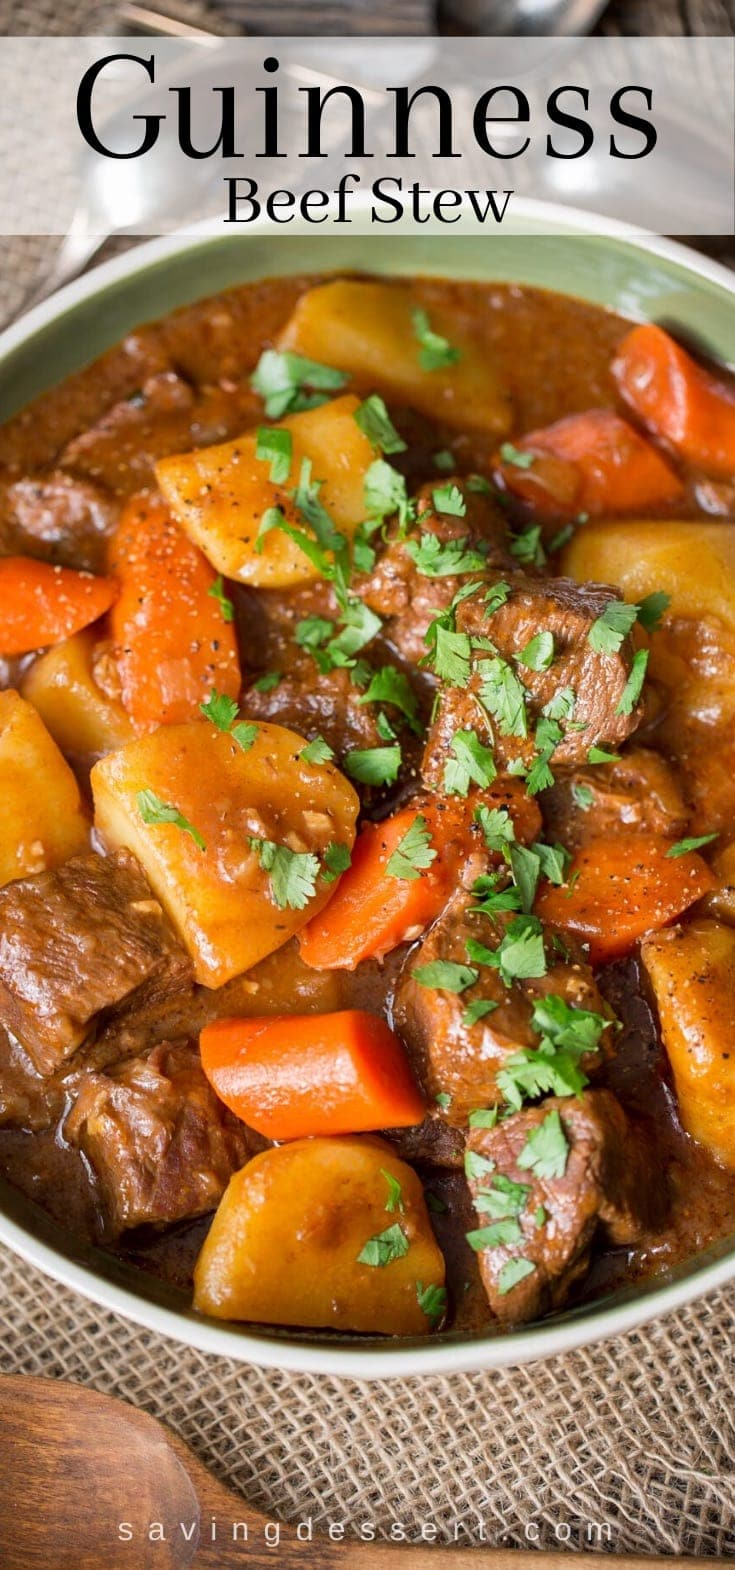 A bowl of Guinness Beef Stew with carrots and potatoes